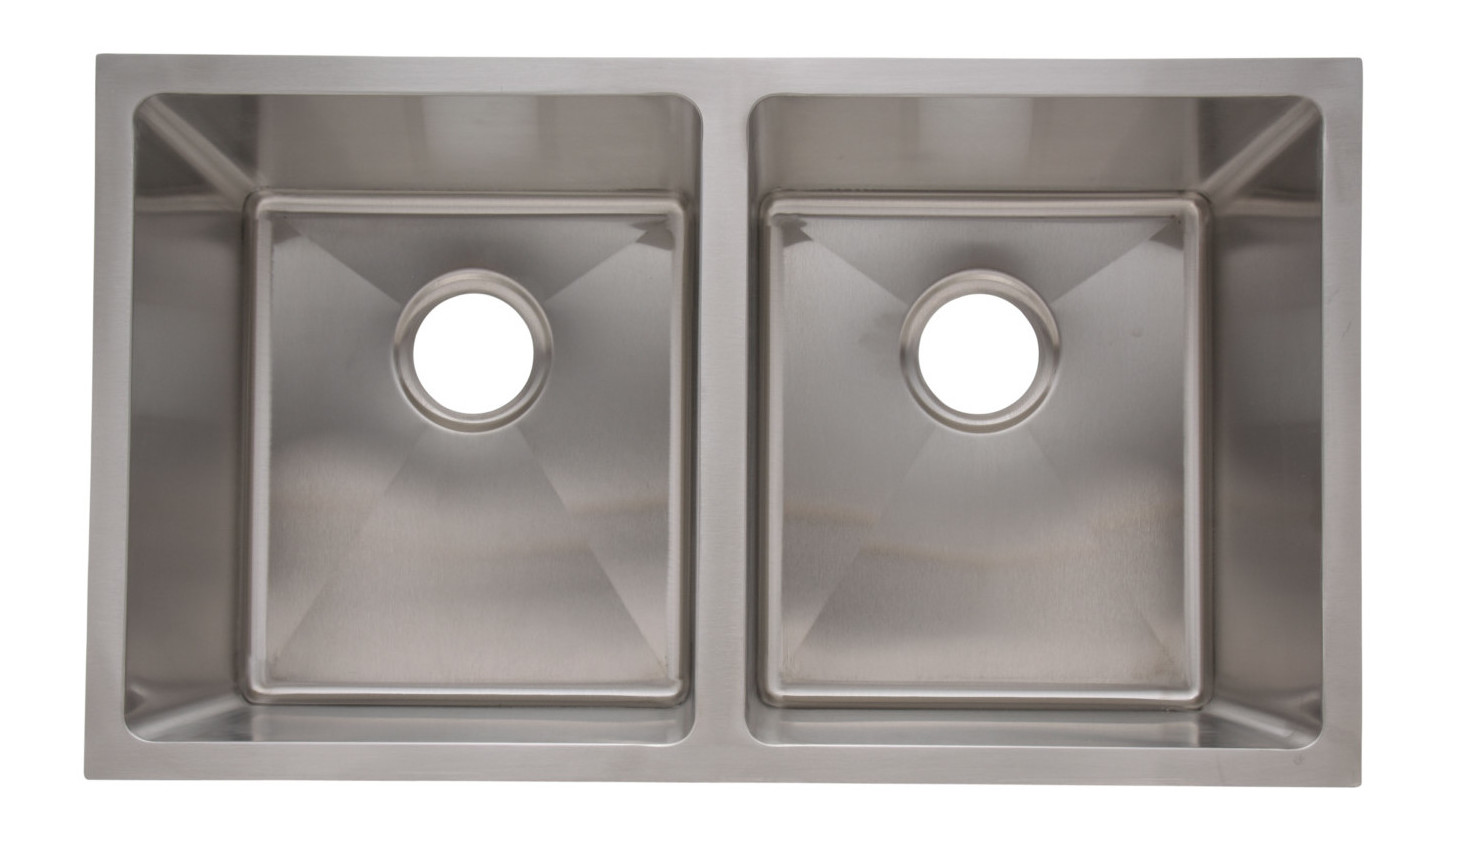 as341 33   x 20   x 10   10   18g double bowl undermount legend stainless steel kitchen sink   amerisink as341 33   x 20   x 10   10   18g double bowl undermount legend      rh   amerisink com